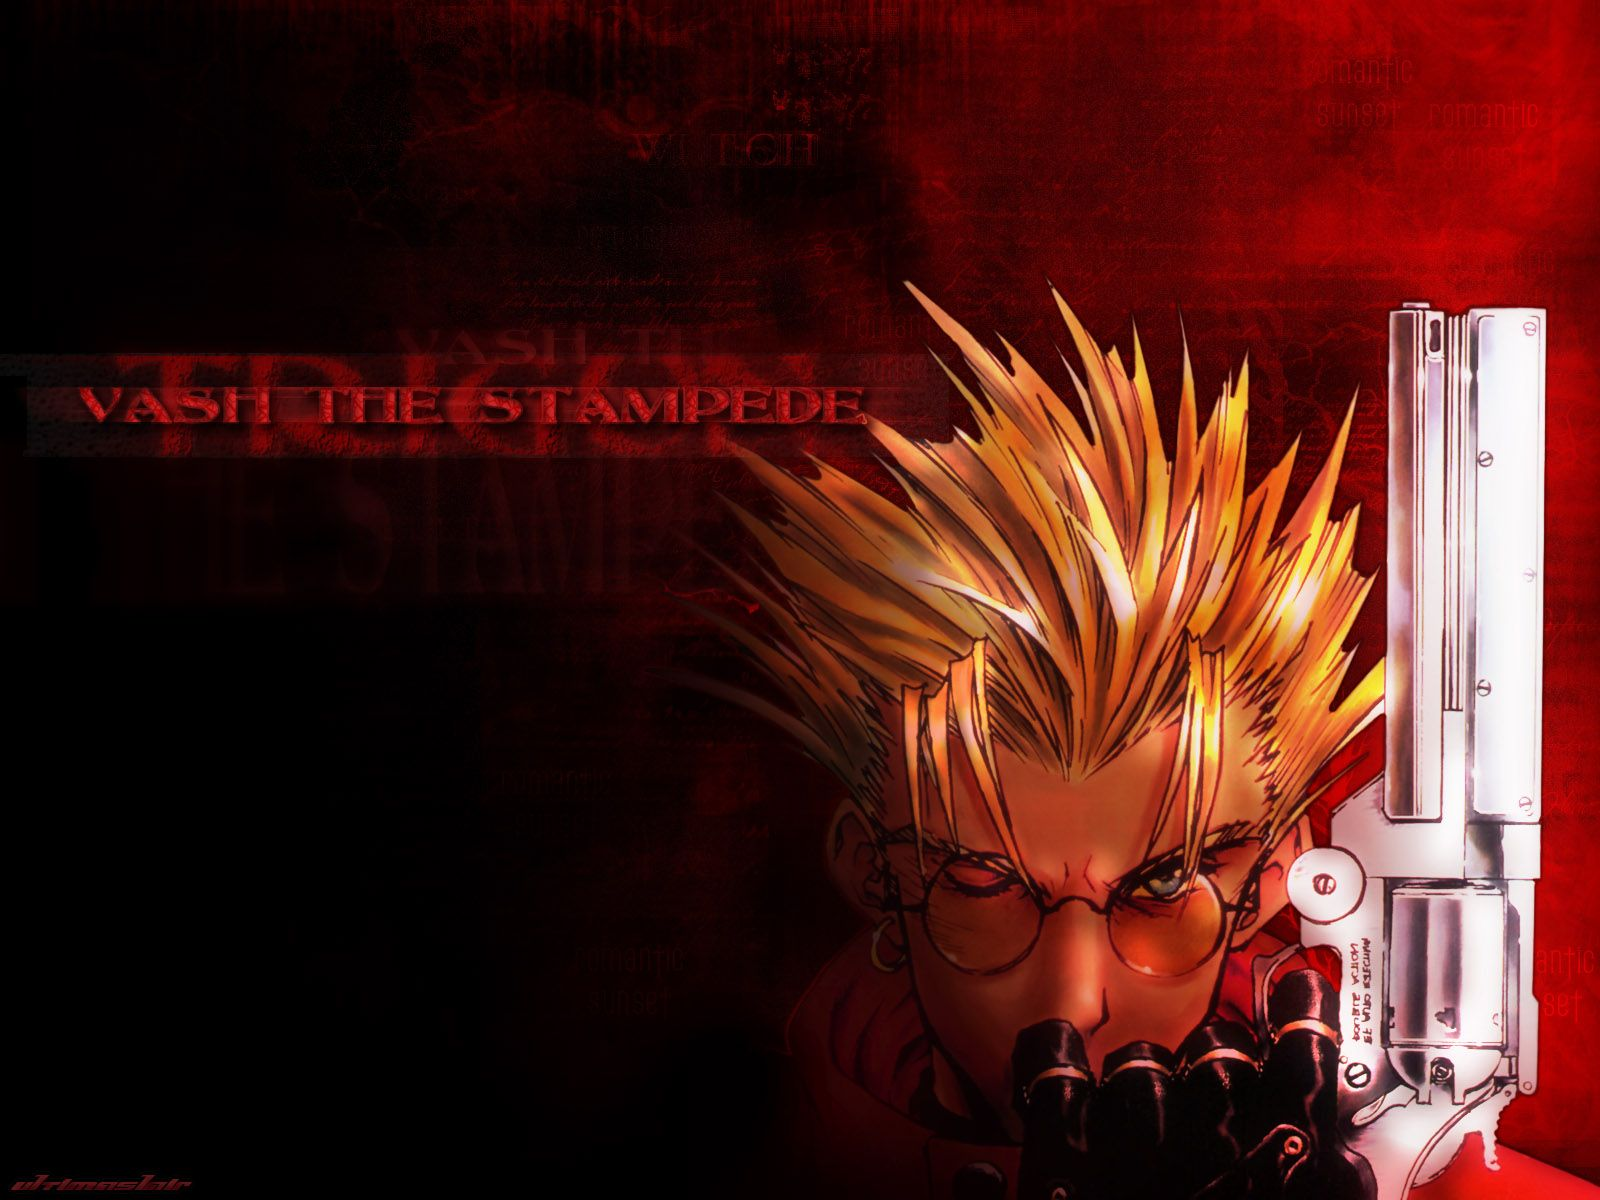 Trigun Computer Wallpapers Desktop Backgrounds 1600x1200 Id 690763 In 2020 Trigun Background Images Animation Quotes